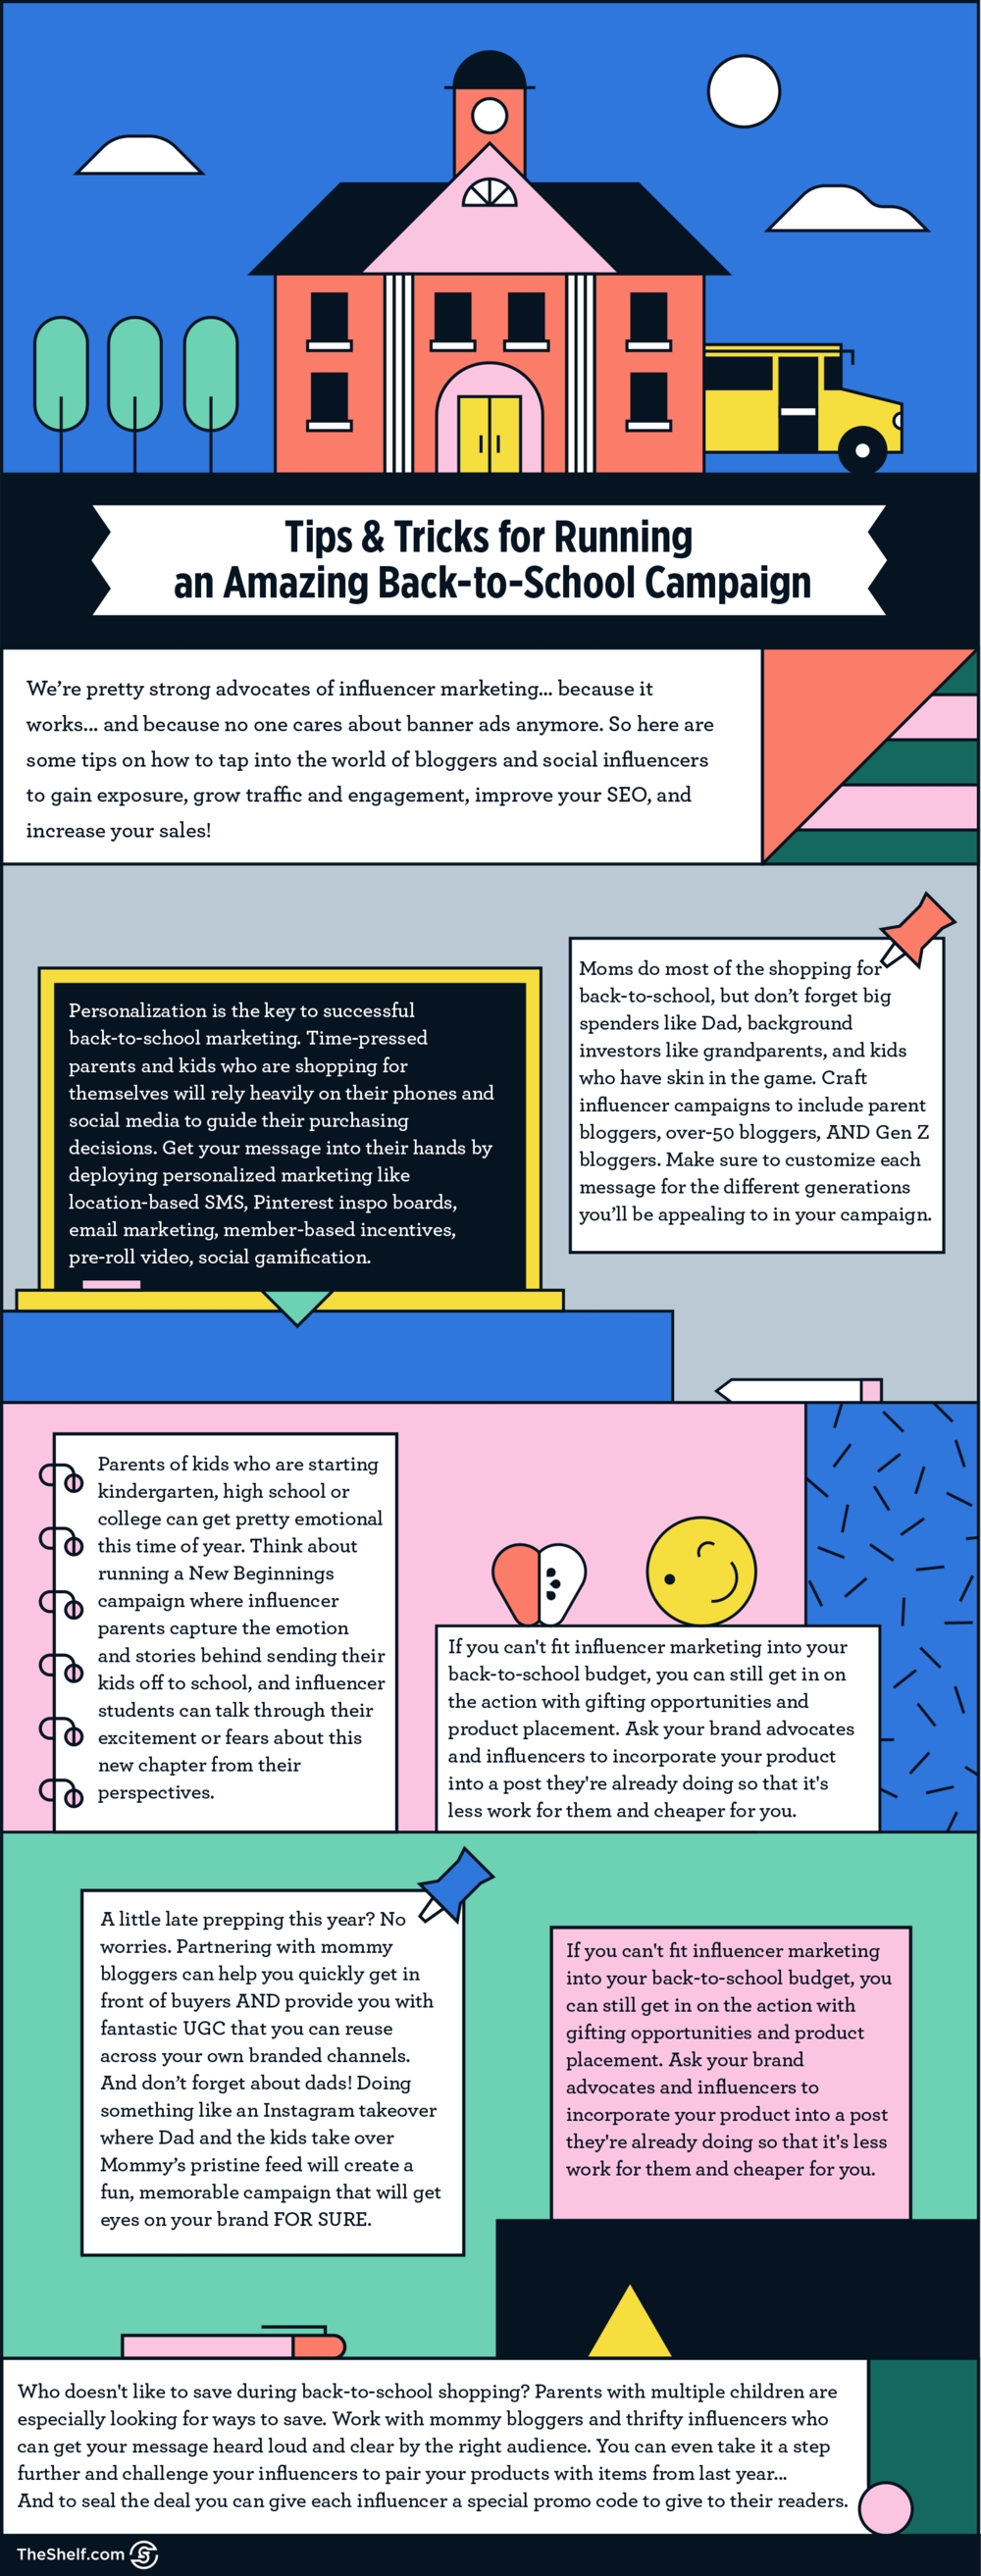 Tips and Tricks for Running an Amazing Back to School Campaign #infographic